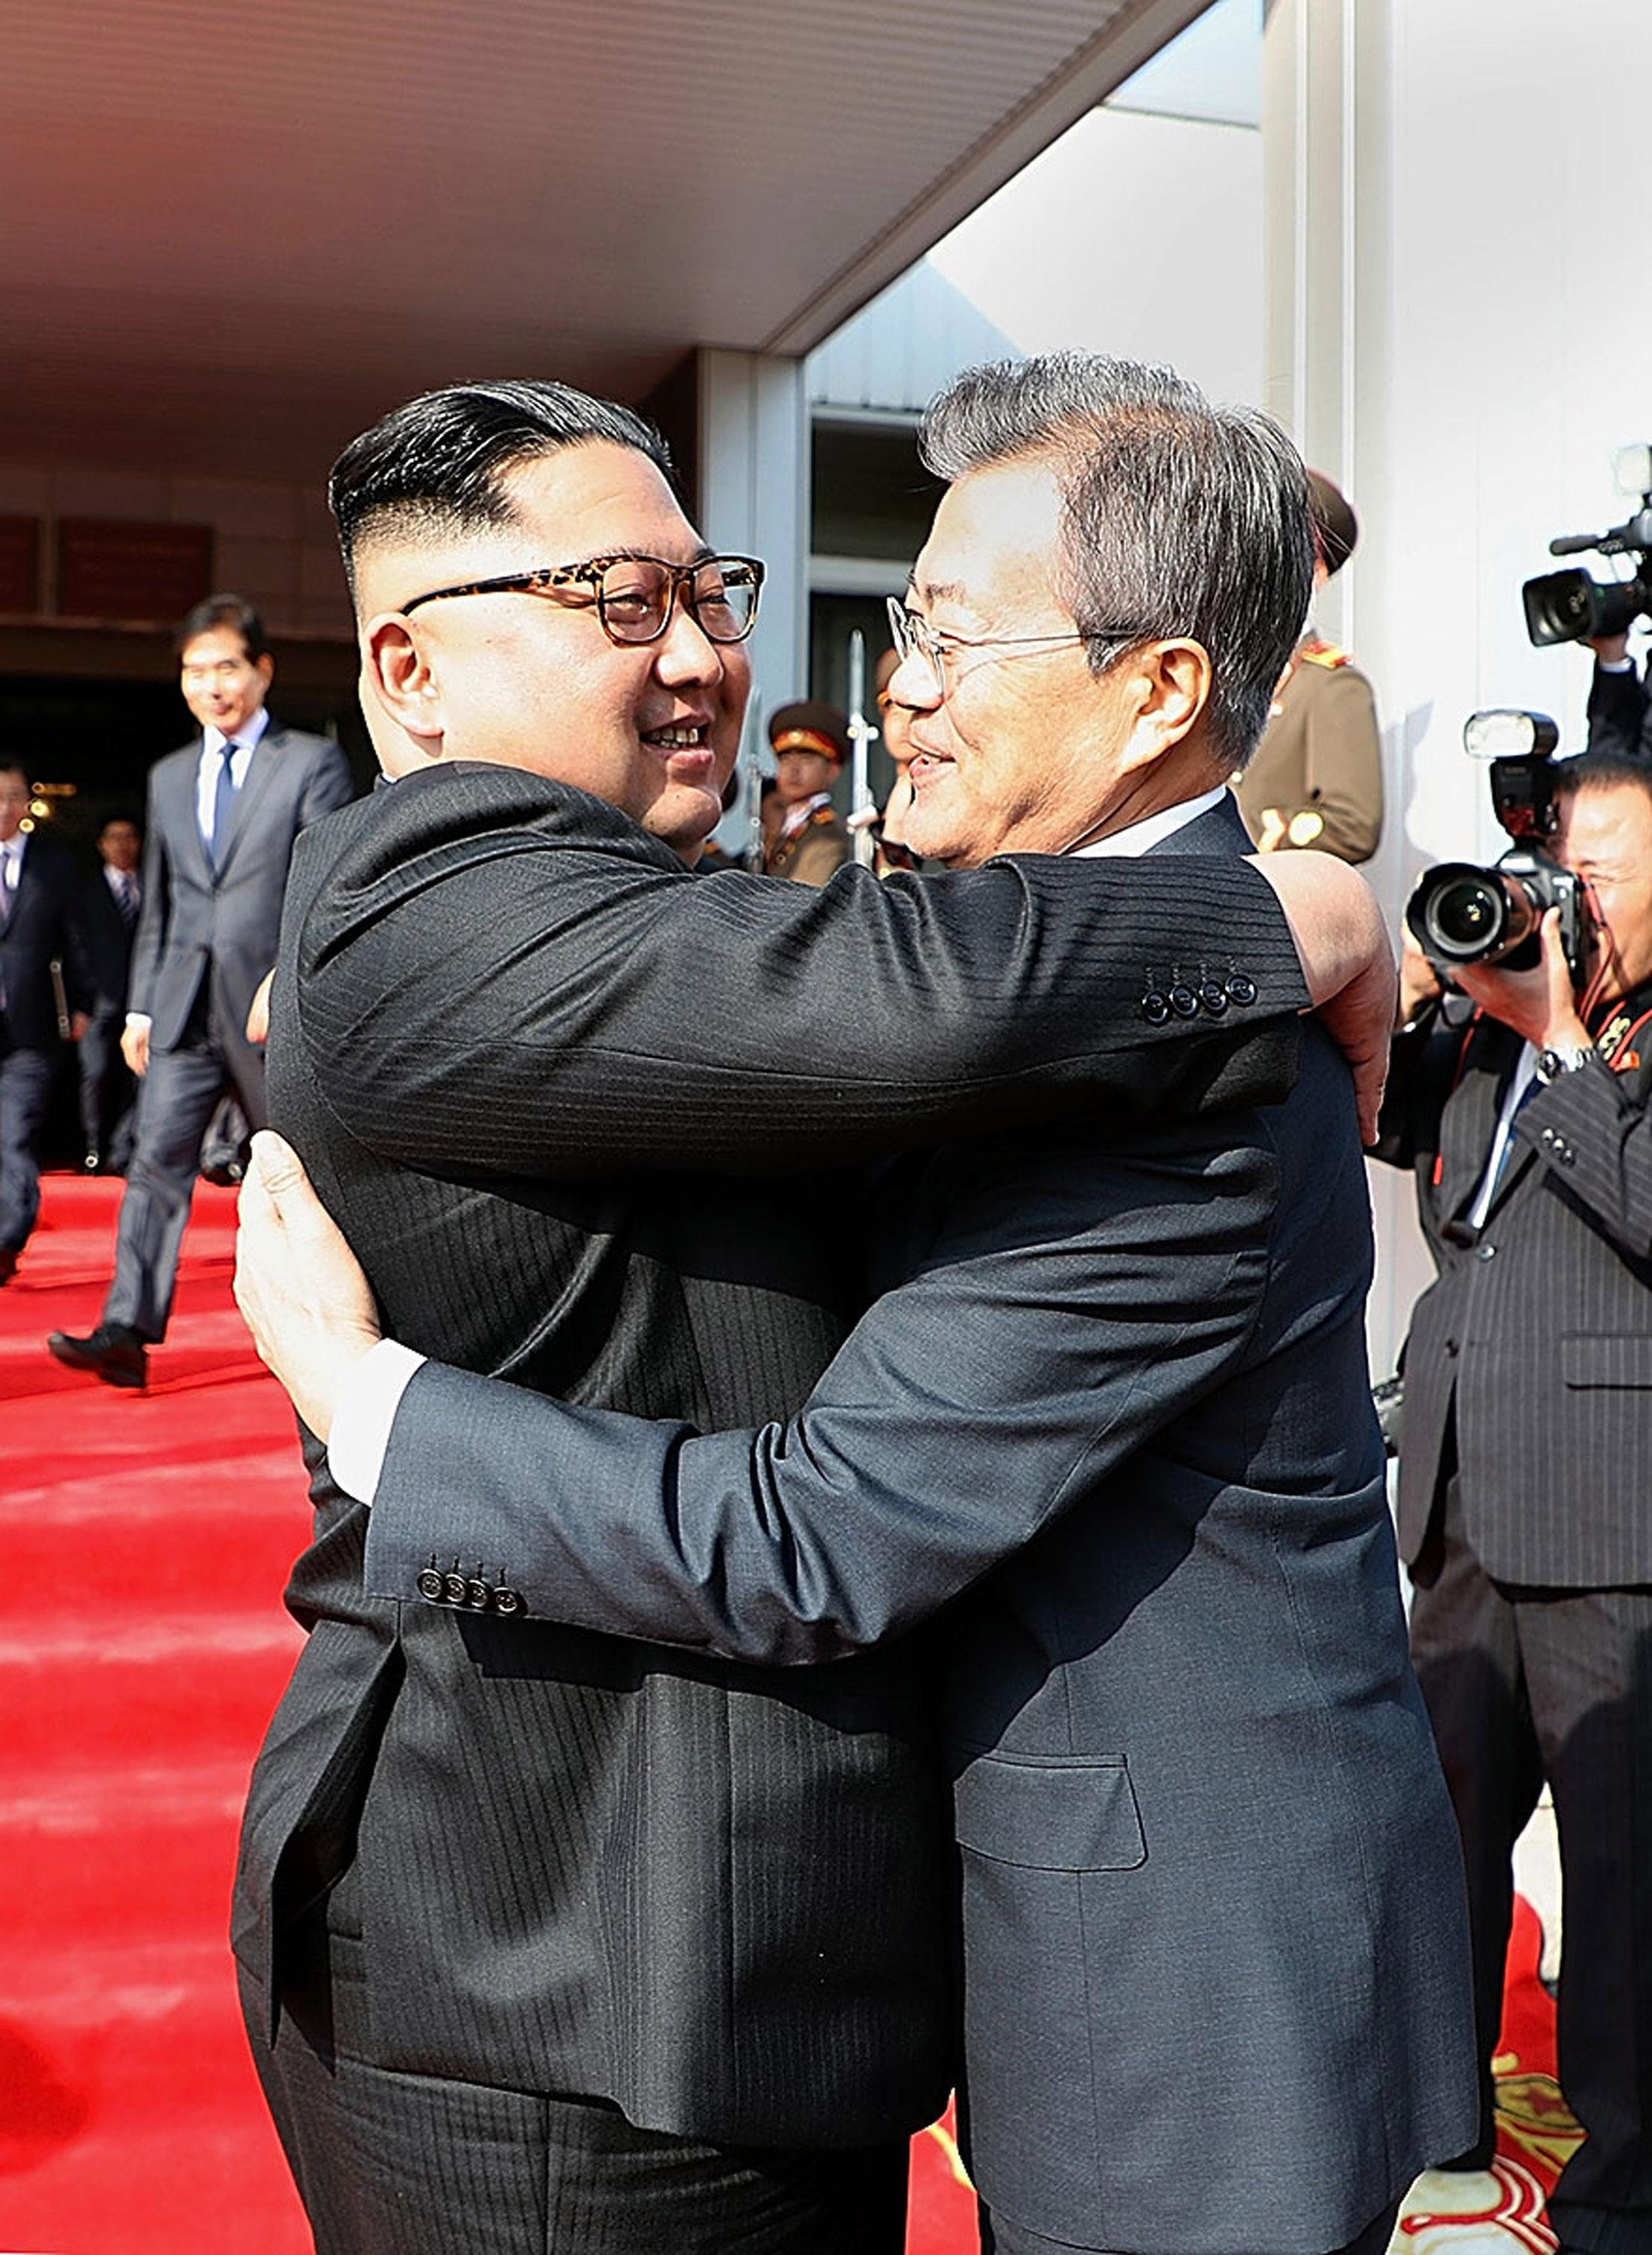 In this handout image provided by South Korean Presidential Blue House, South Korean President Moon Jae-in (R) hugs with North Korean leader Kim Jong Un (L) before their meeting on May 26, 2018 in Panmunjom, North Korea.